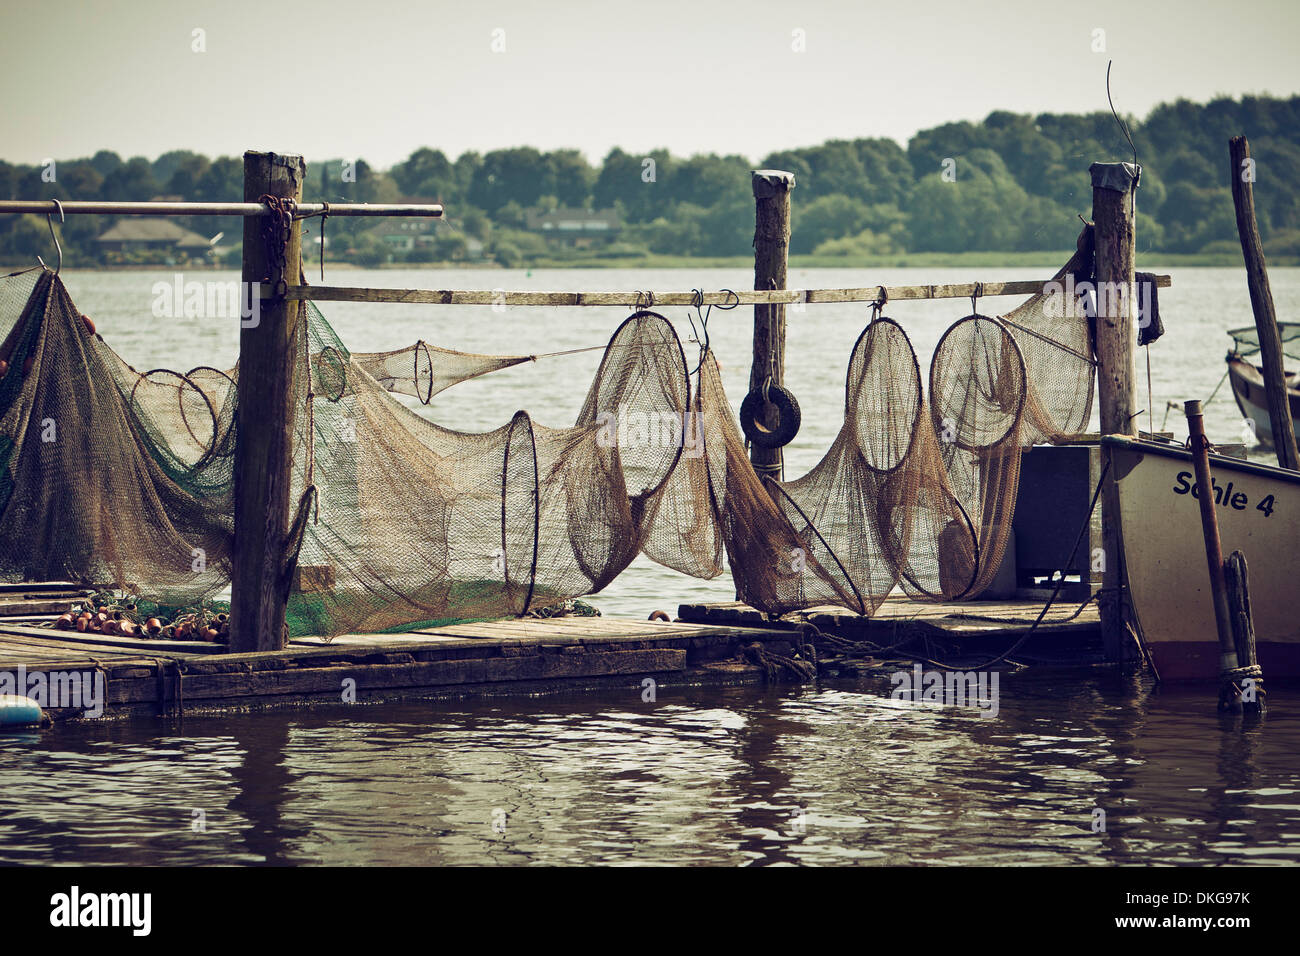 Fisher area Holm, Schlei, Schleswig-Holstein, Germany, Europe - Stock Image